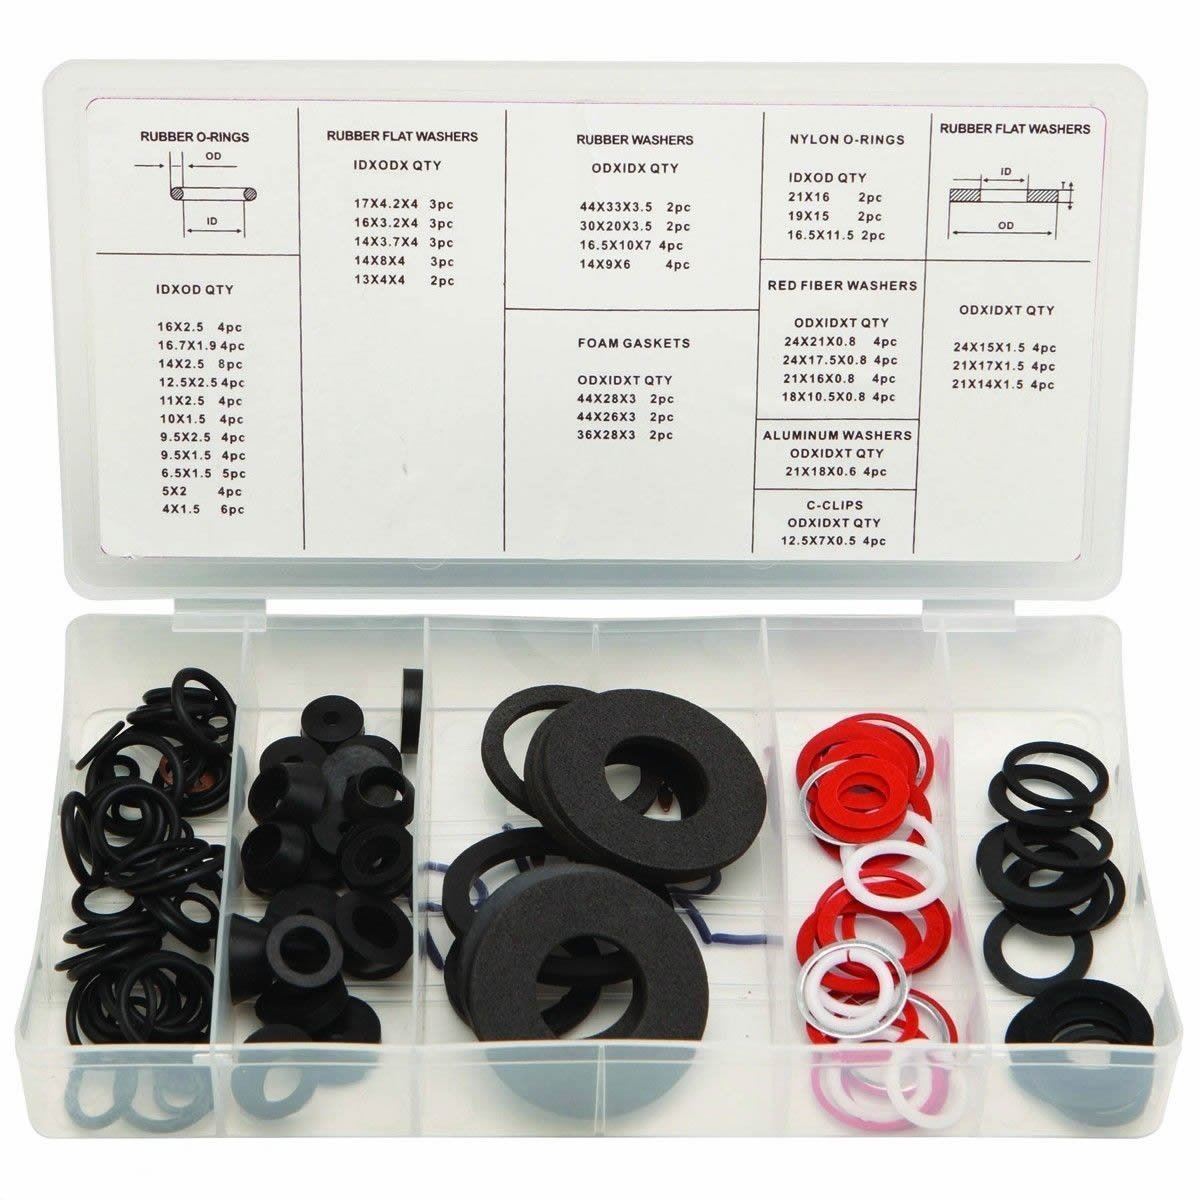 125 Pc Rubber O-ring Hose Gasket Flat Washer Faucet Gromet Assortment Set Kit, This Complete Assortment of Washers Is Designed For Reseating A Leaky Tap Or Faucet In The By Generic